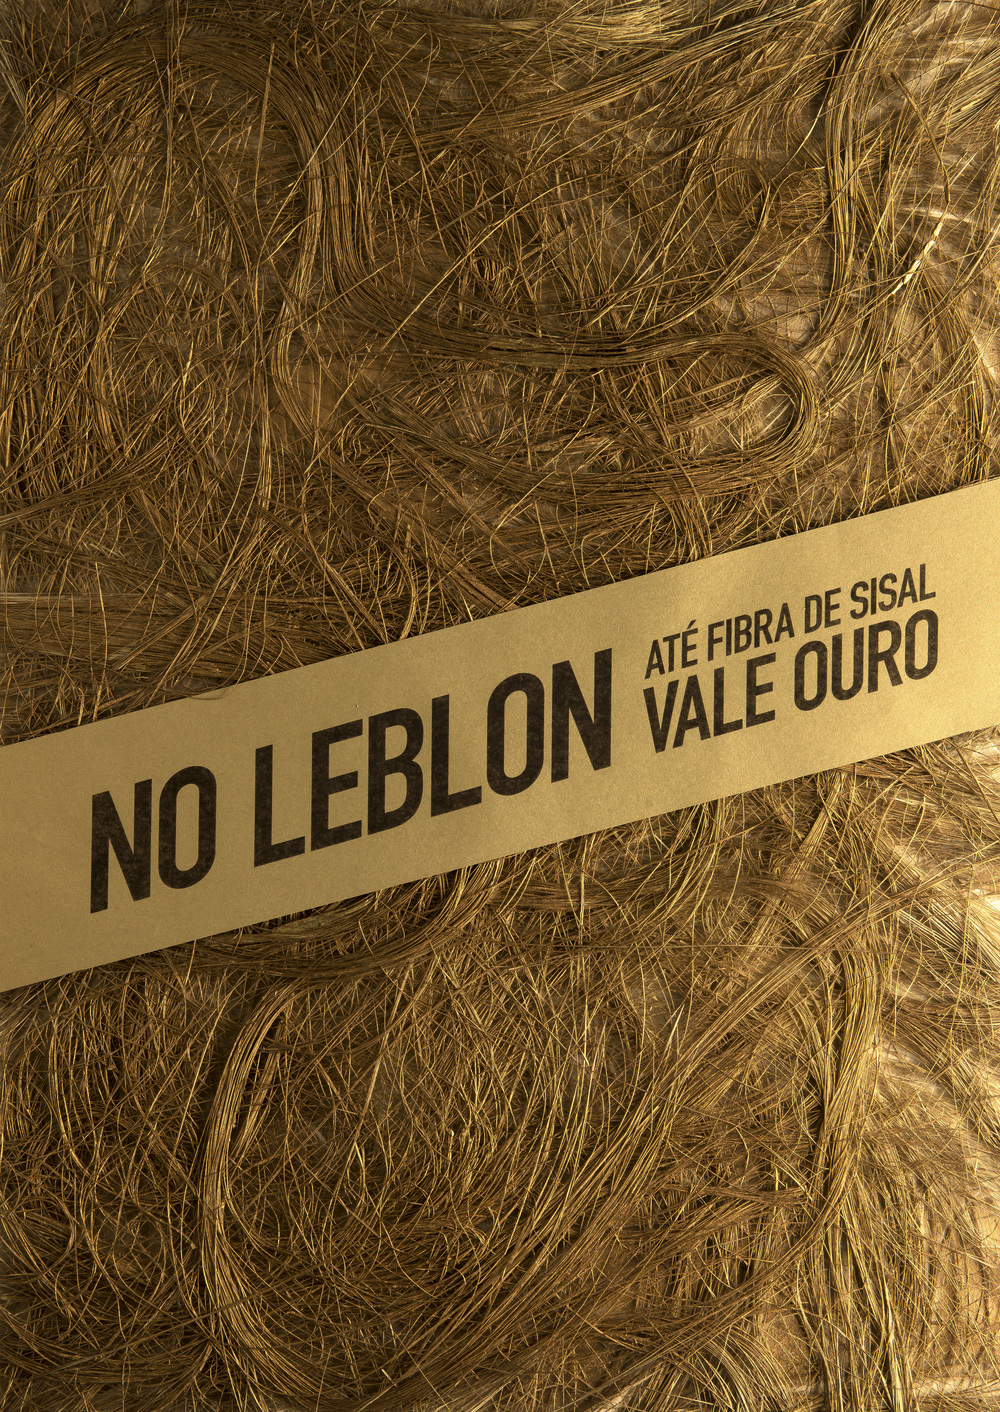 In Leblon, even sisal fiber is worth gold.